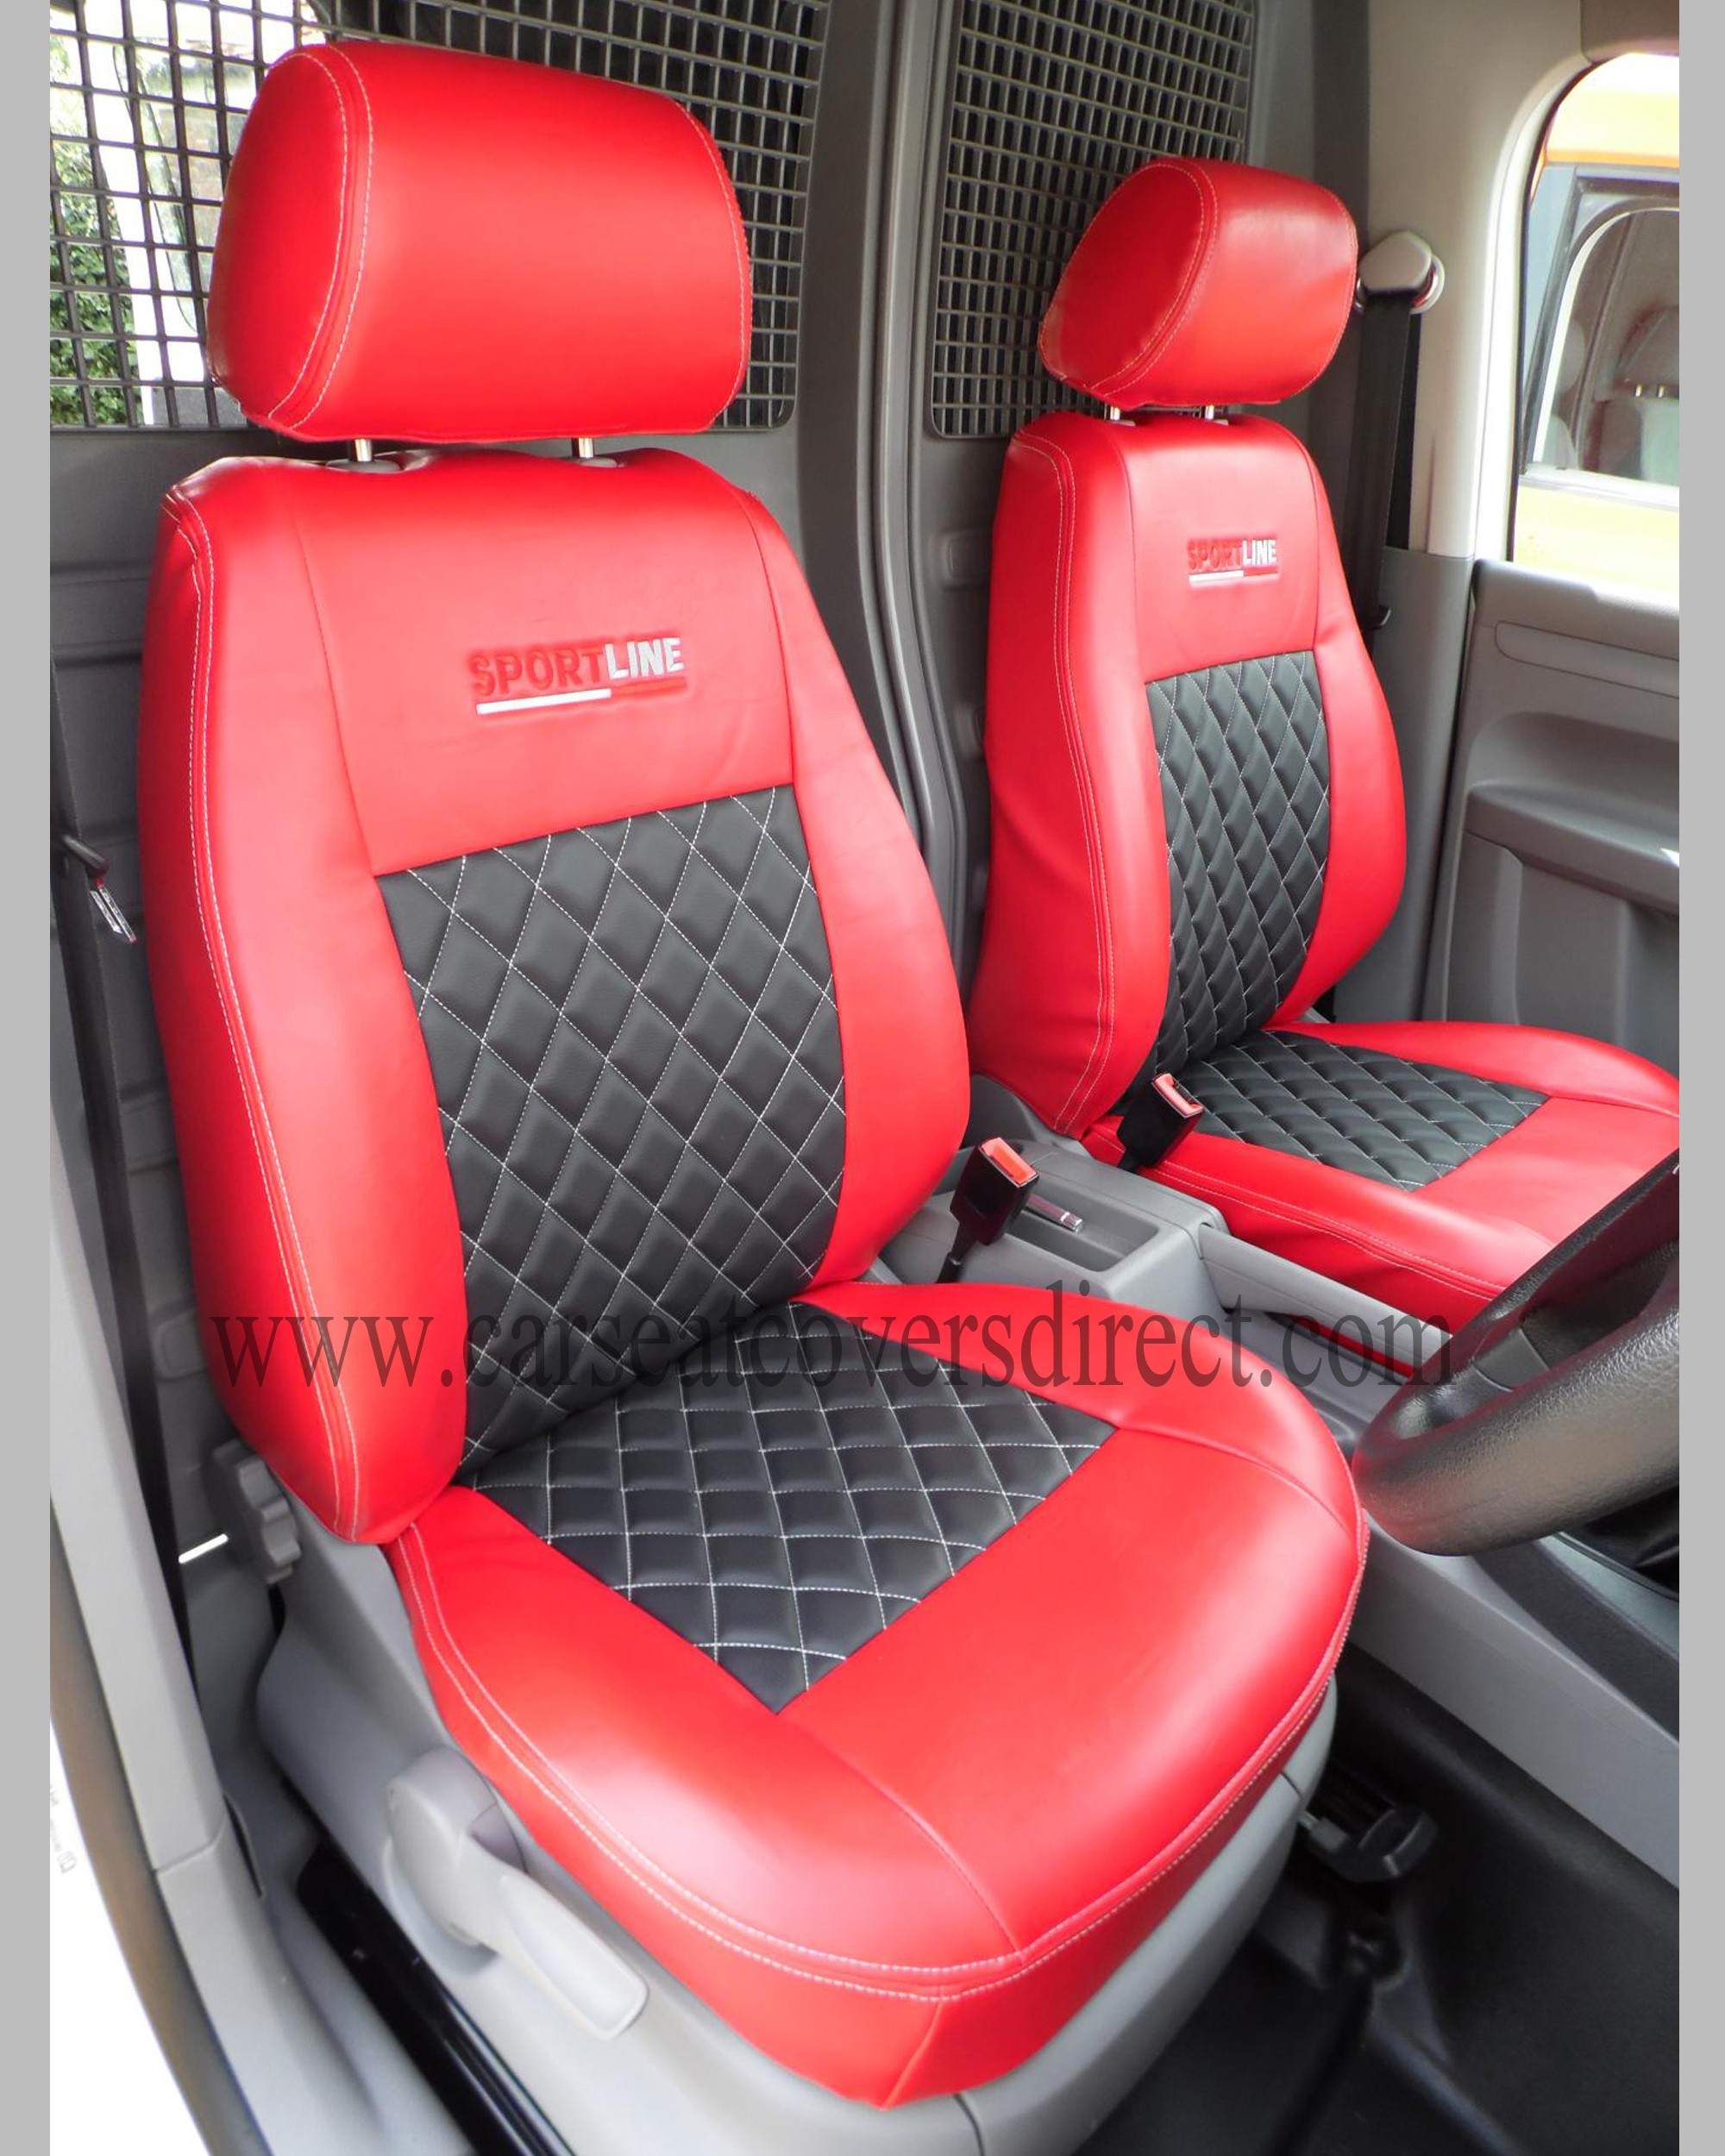 Search results for Volkswagen Car Seat Covers Direct Tailored